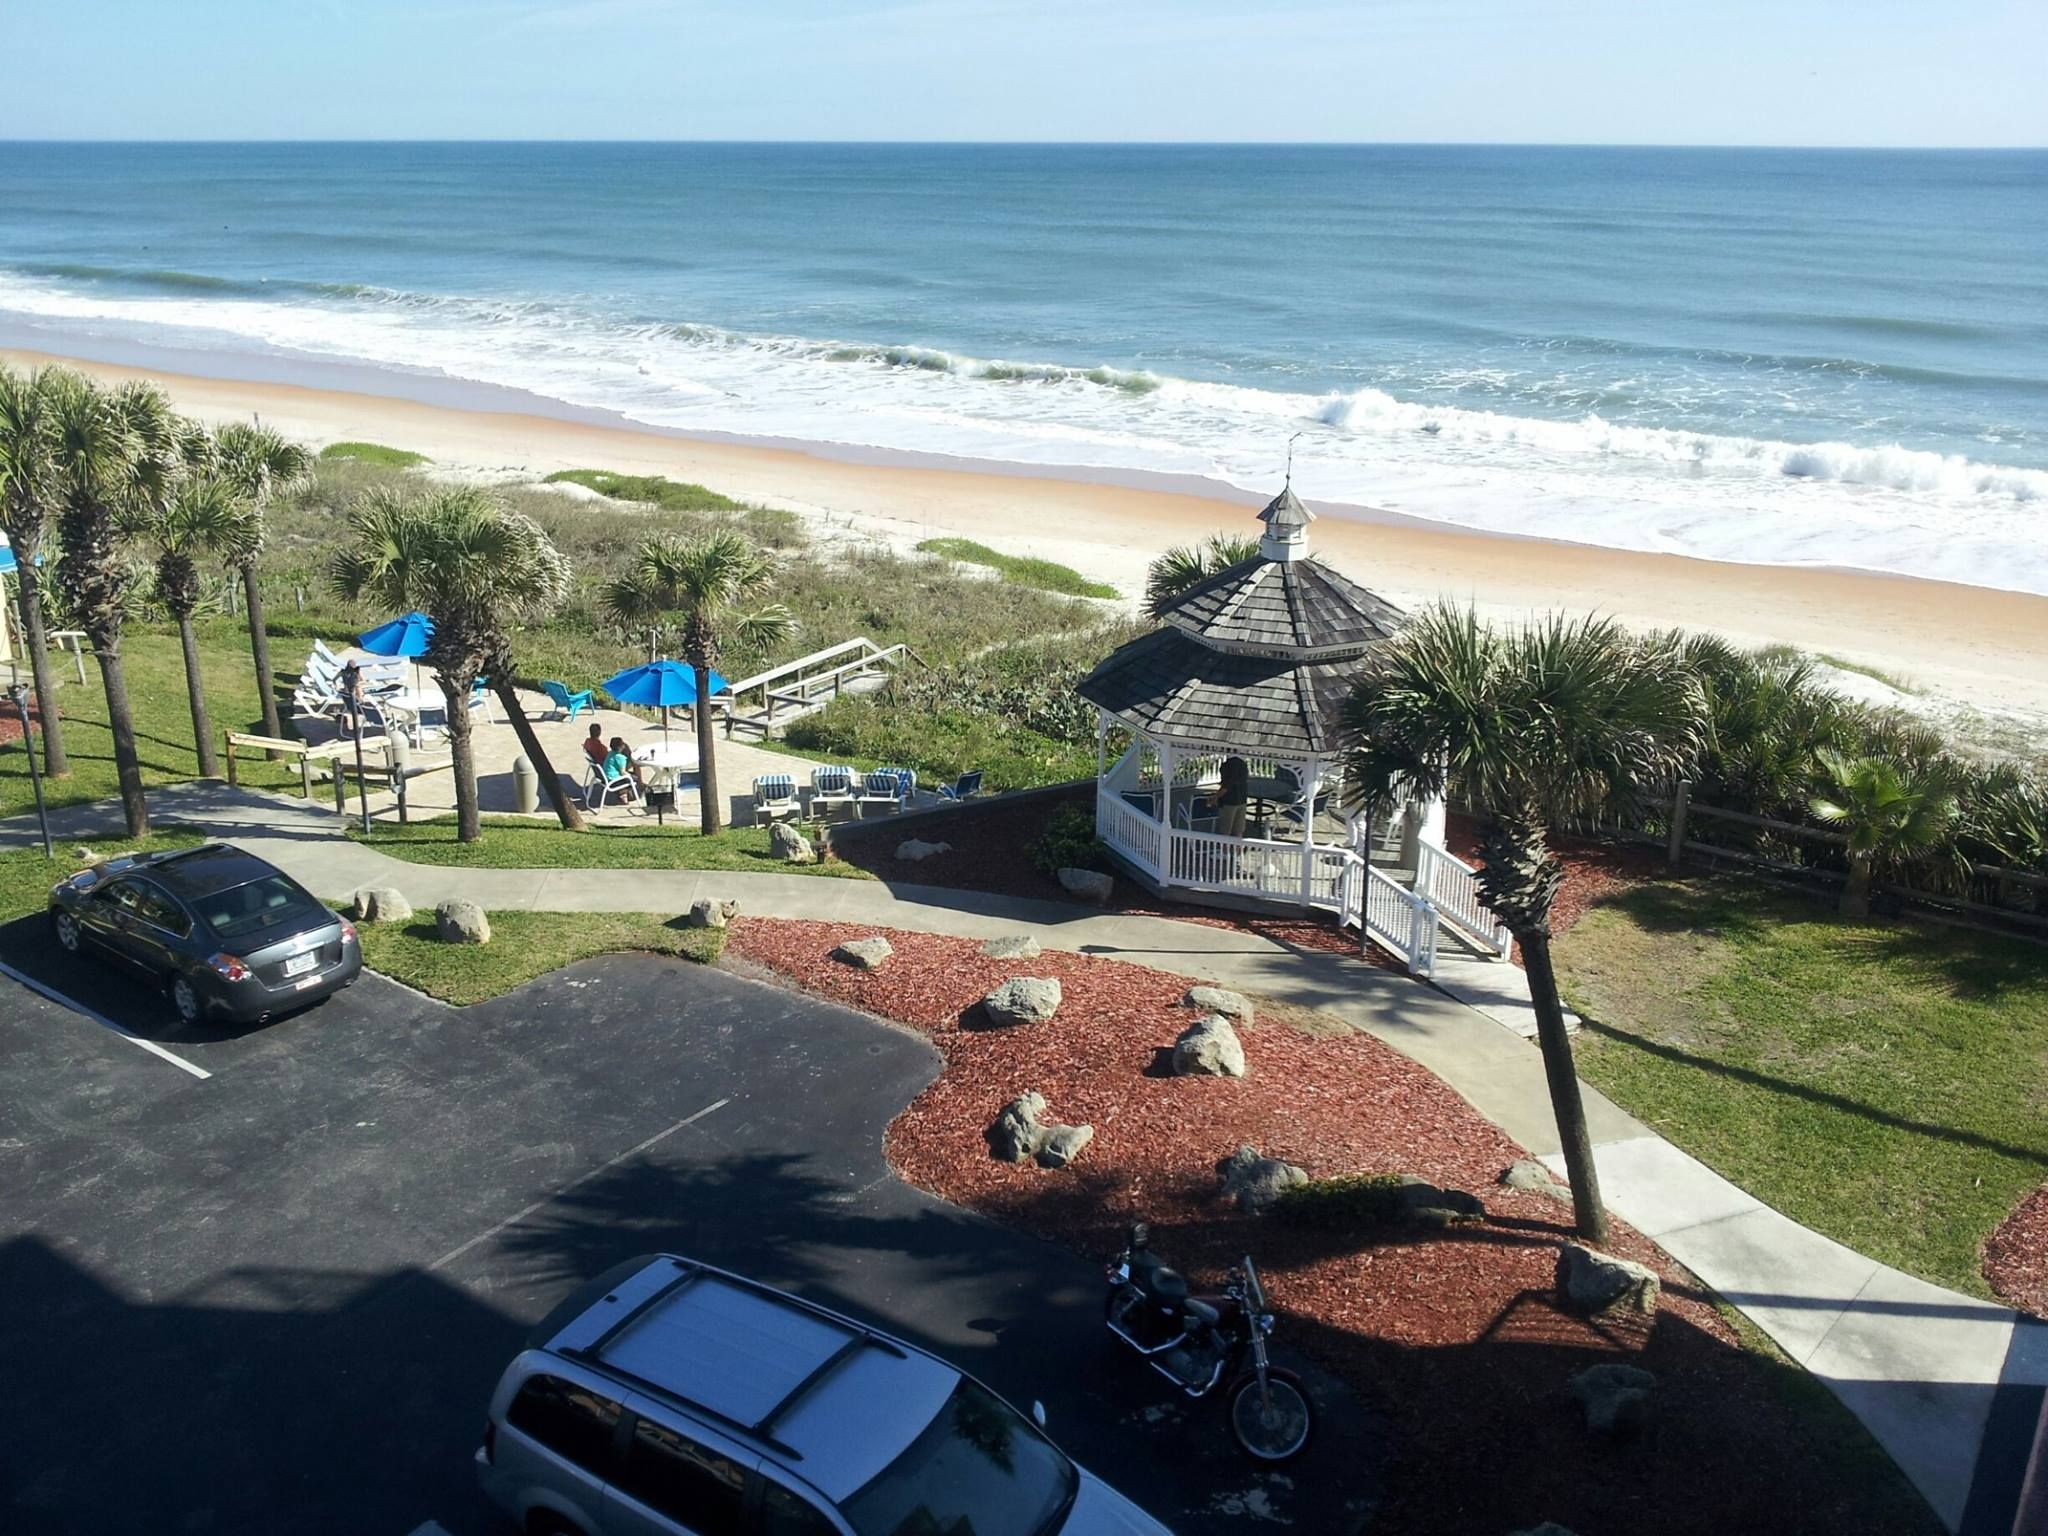 8 Scenic Oceanfront Campgrounds On The East Coast Camping Destinations East Coast Camping Places